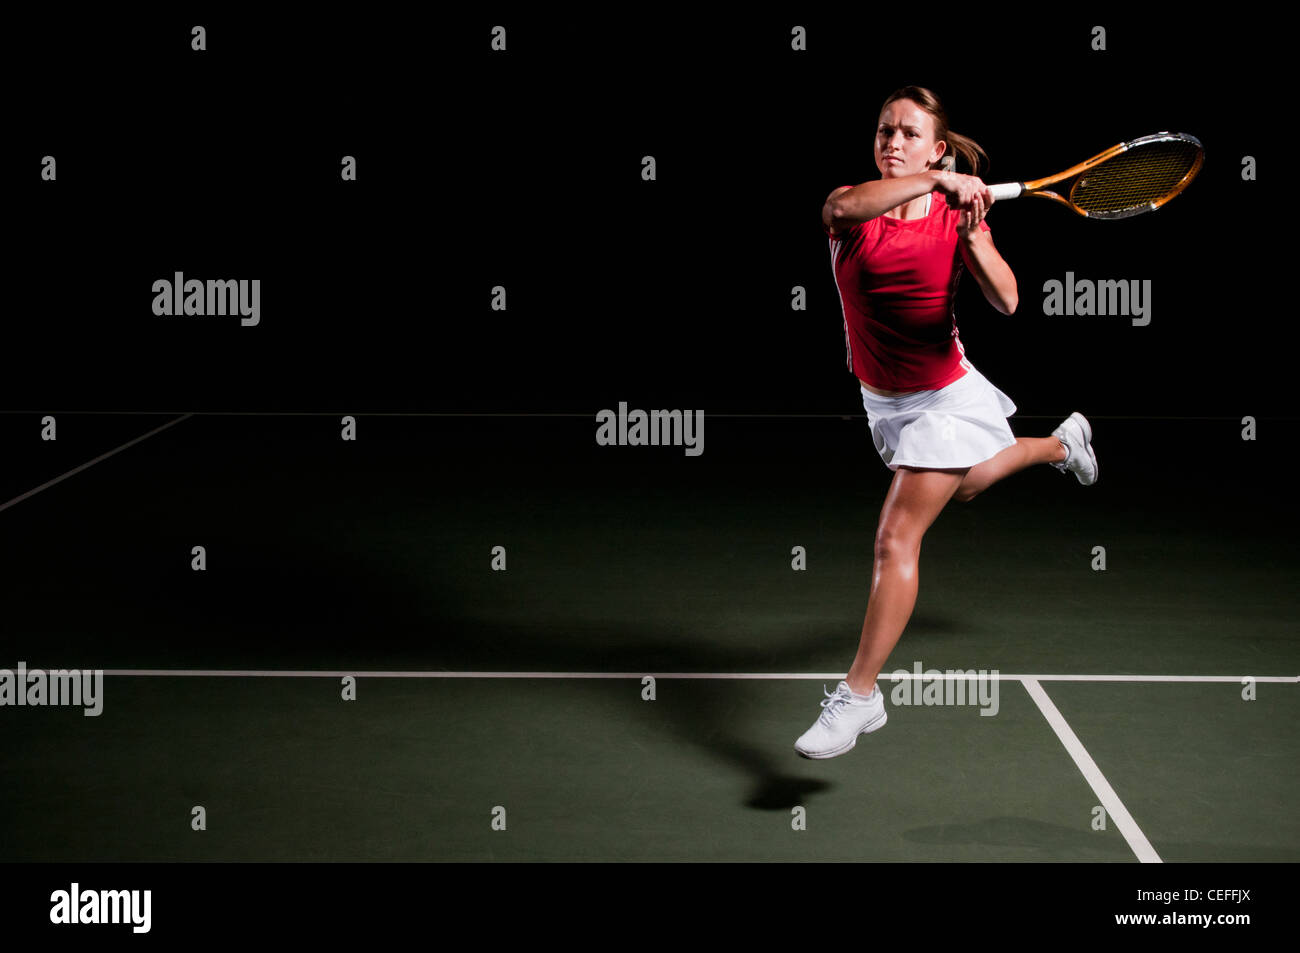 Woman playing tennis indoors - Stock Image